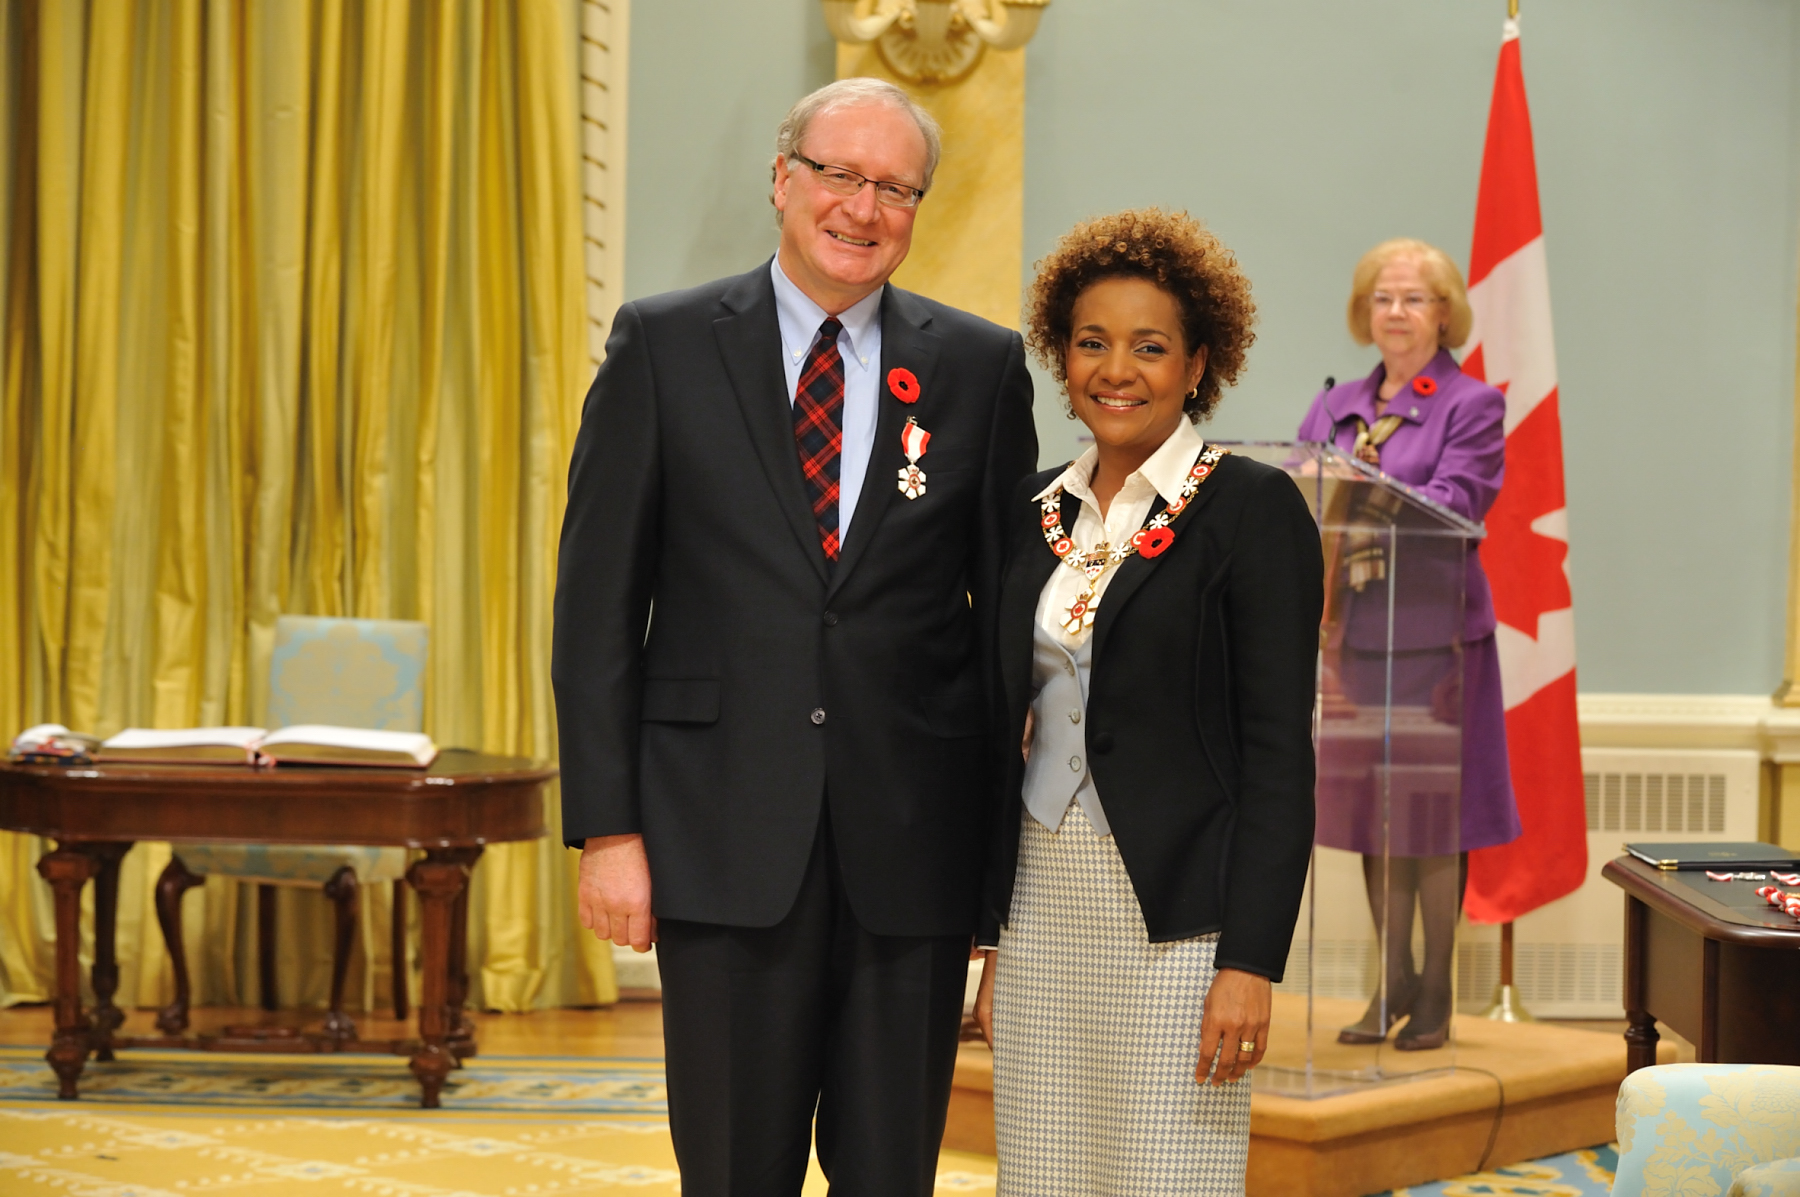 Her Excellency the Right Honourable Michaëlle Jean, Governor General of Canada, presented the insignia of Member of the Order of Canada to Wade MacLauchlan, C.M., who had a lasting impact on post-secondary education and economic development.